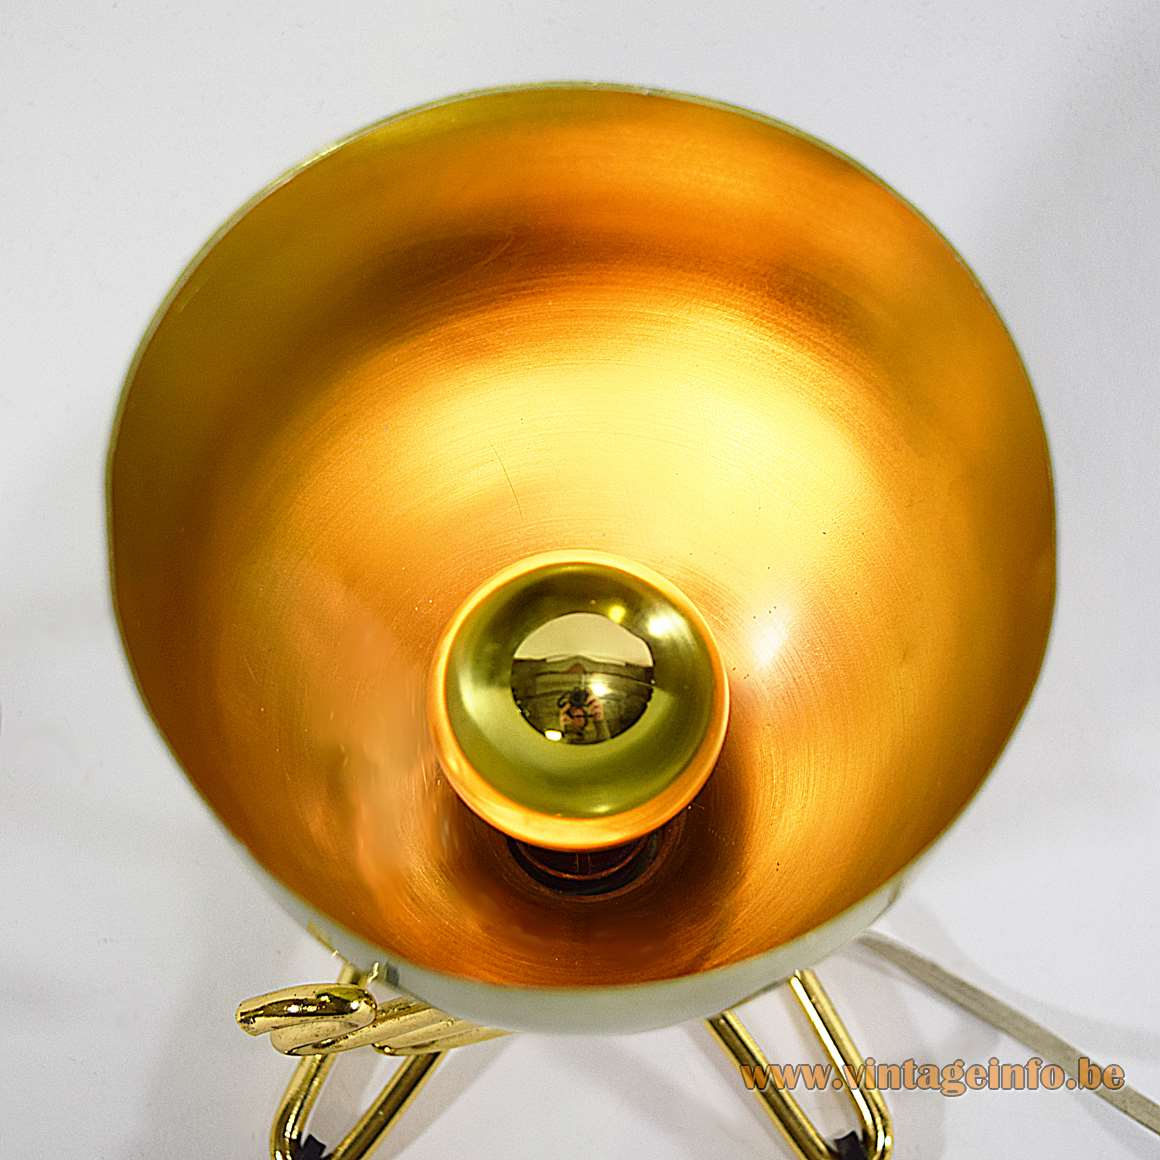 Conical TV Lamp - Here with a gold cupped light bulb